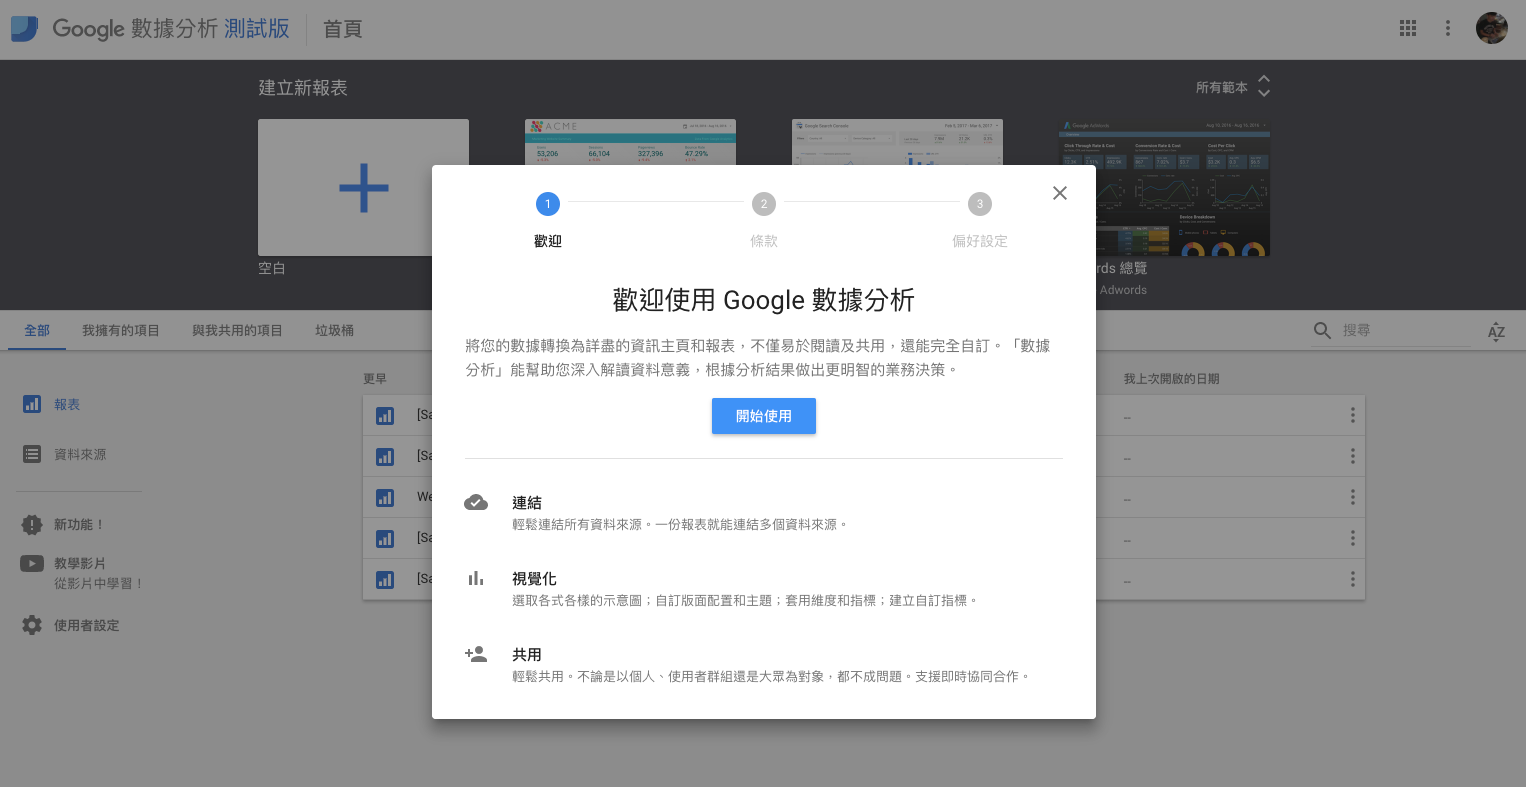 data studio1 - 使用 Google Data Studio 數據分析工具,輕鬆打造 Google Analytics 視覺化報表